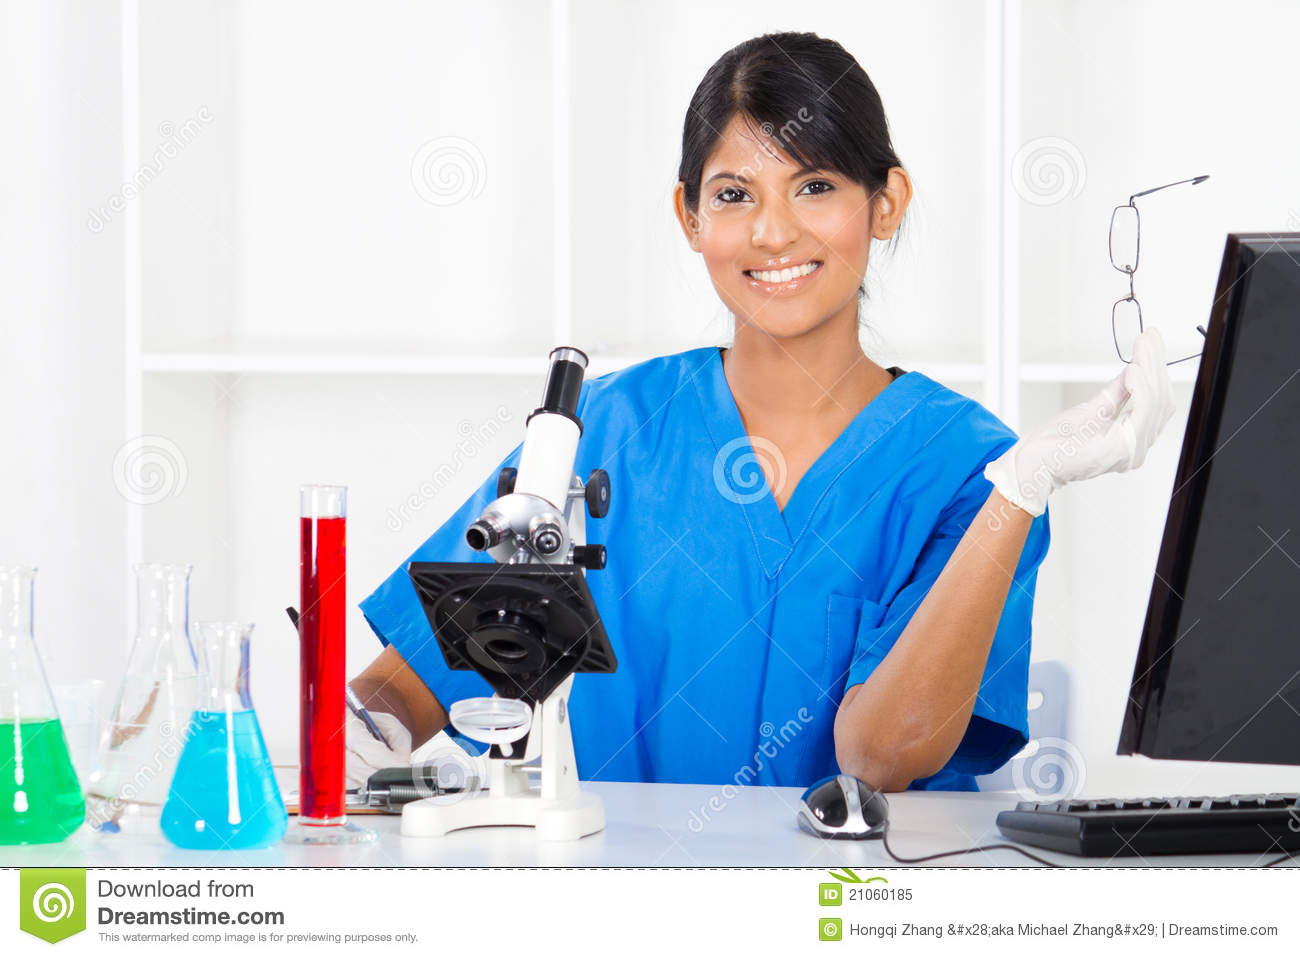 Indian Lab Technician Stock Photos, Images, & Pictures - 148 Images